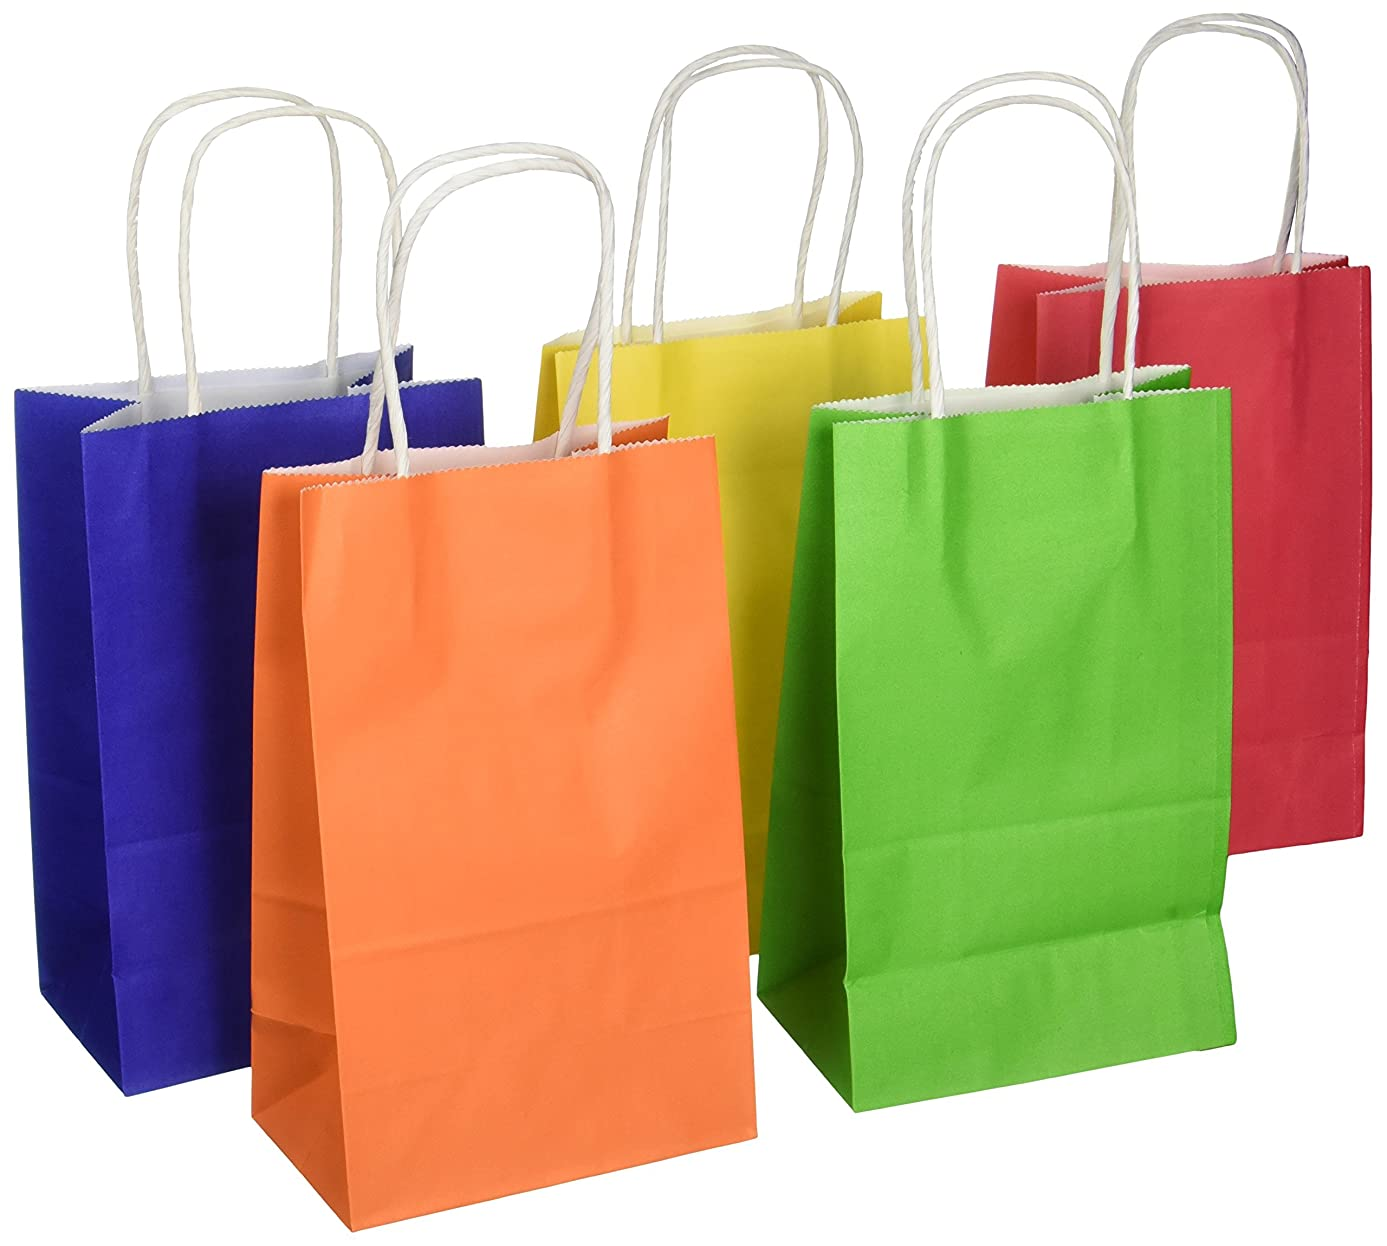 Darice BAG247 13Piece, Primary Color Paper Bag, 3.25 by 5.25 by 8.375 inch